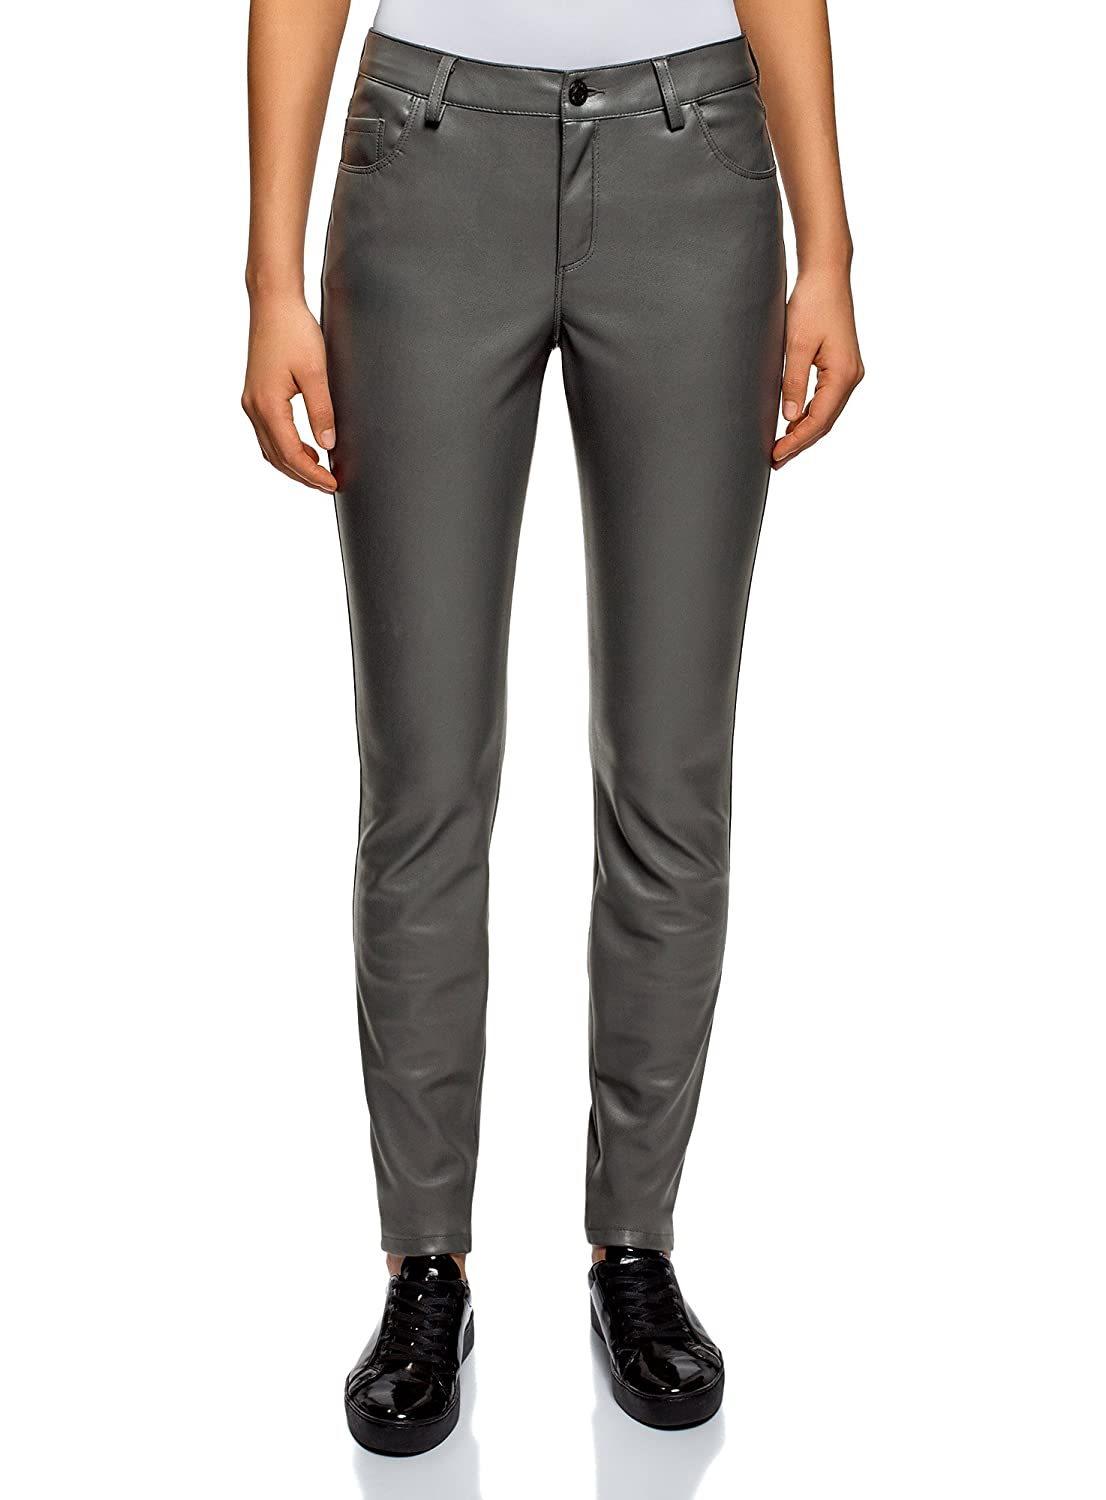 d0074e9a52beb oodji Ultra Women's Slim-Fit Faux Leather Trousers at Amazon Women's  Clothing store: